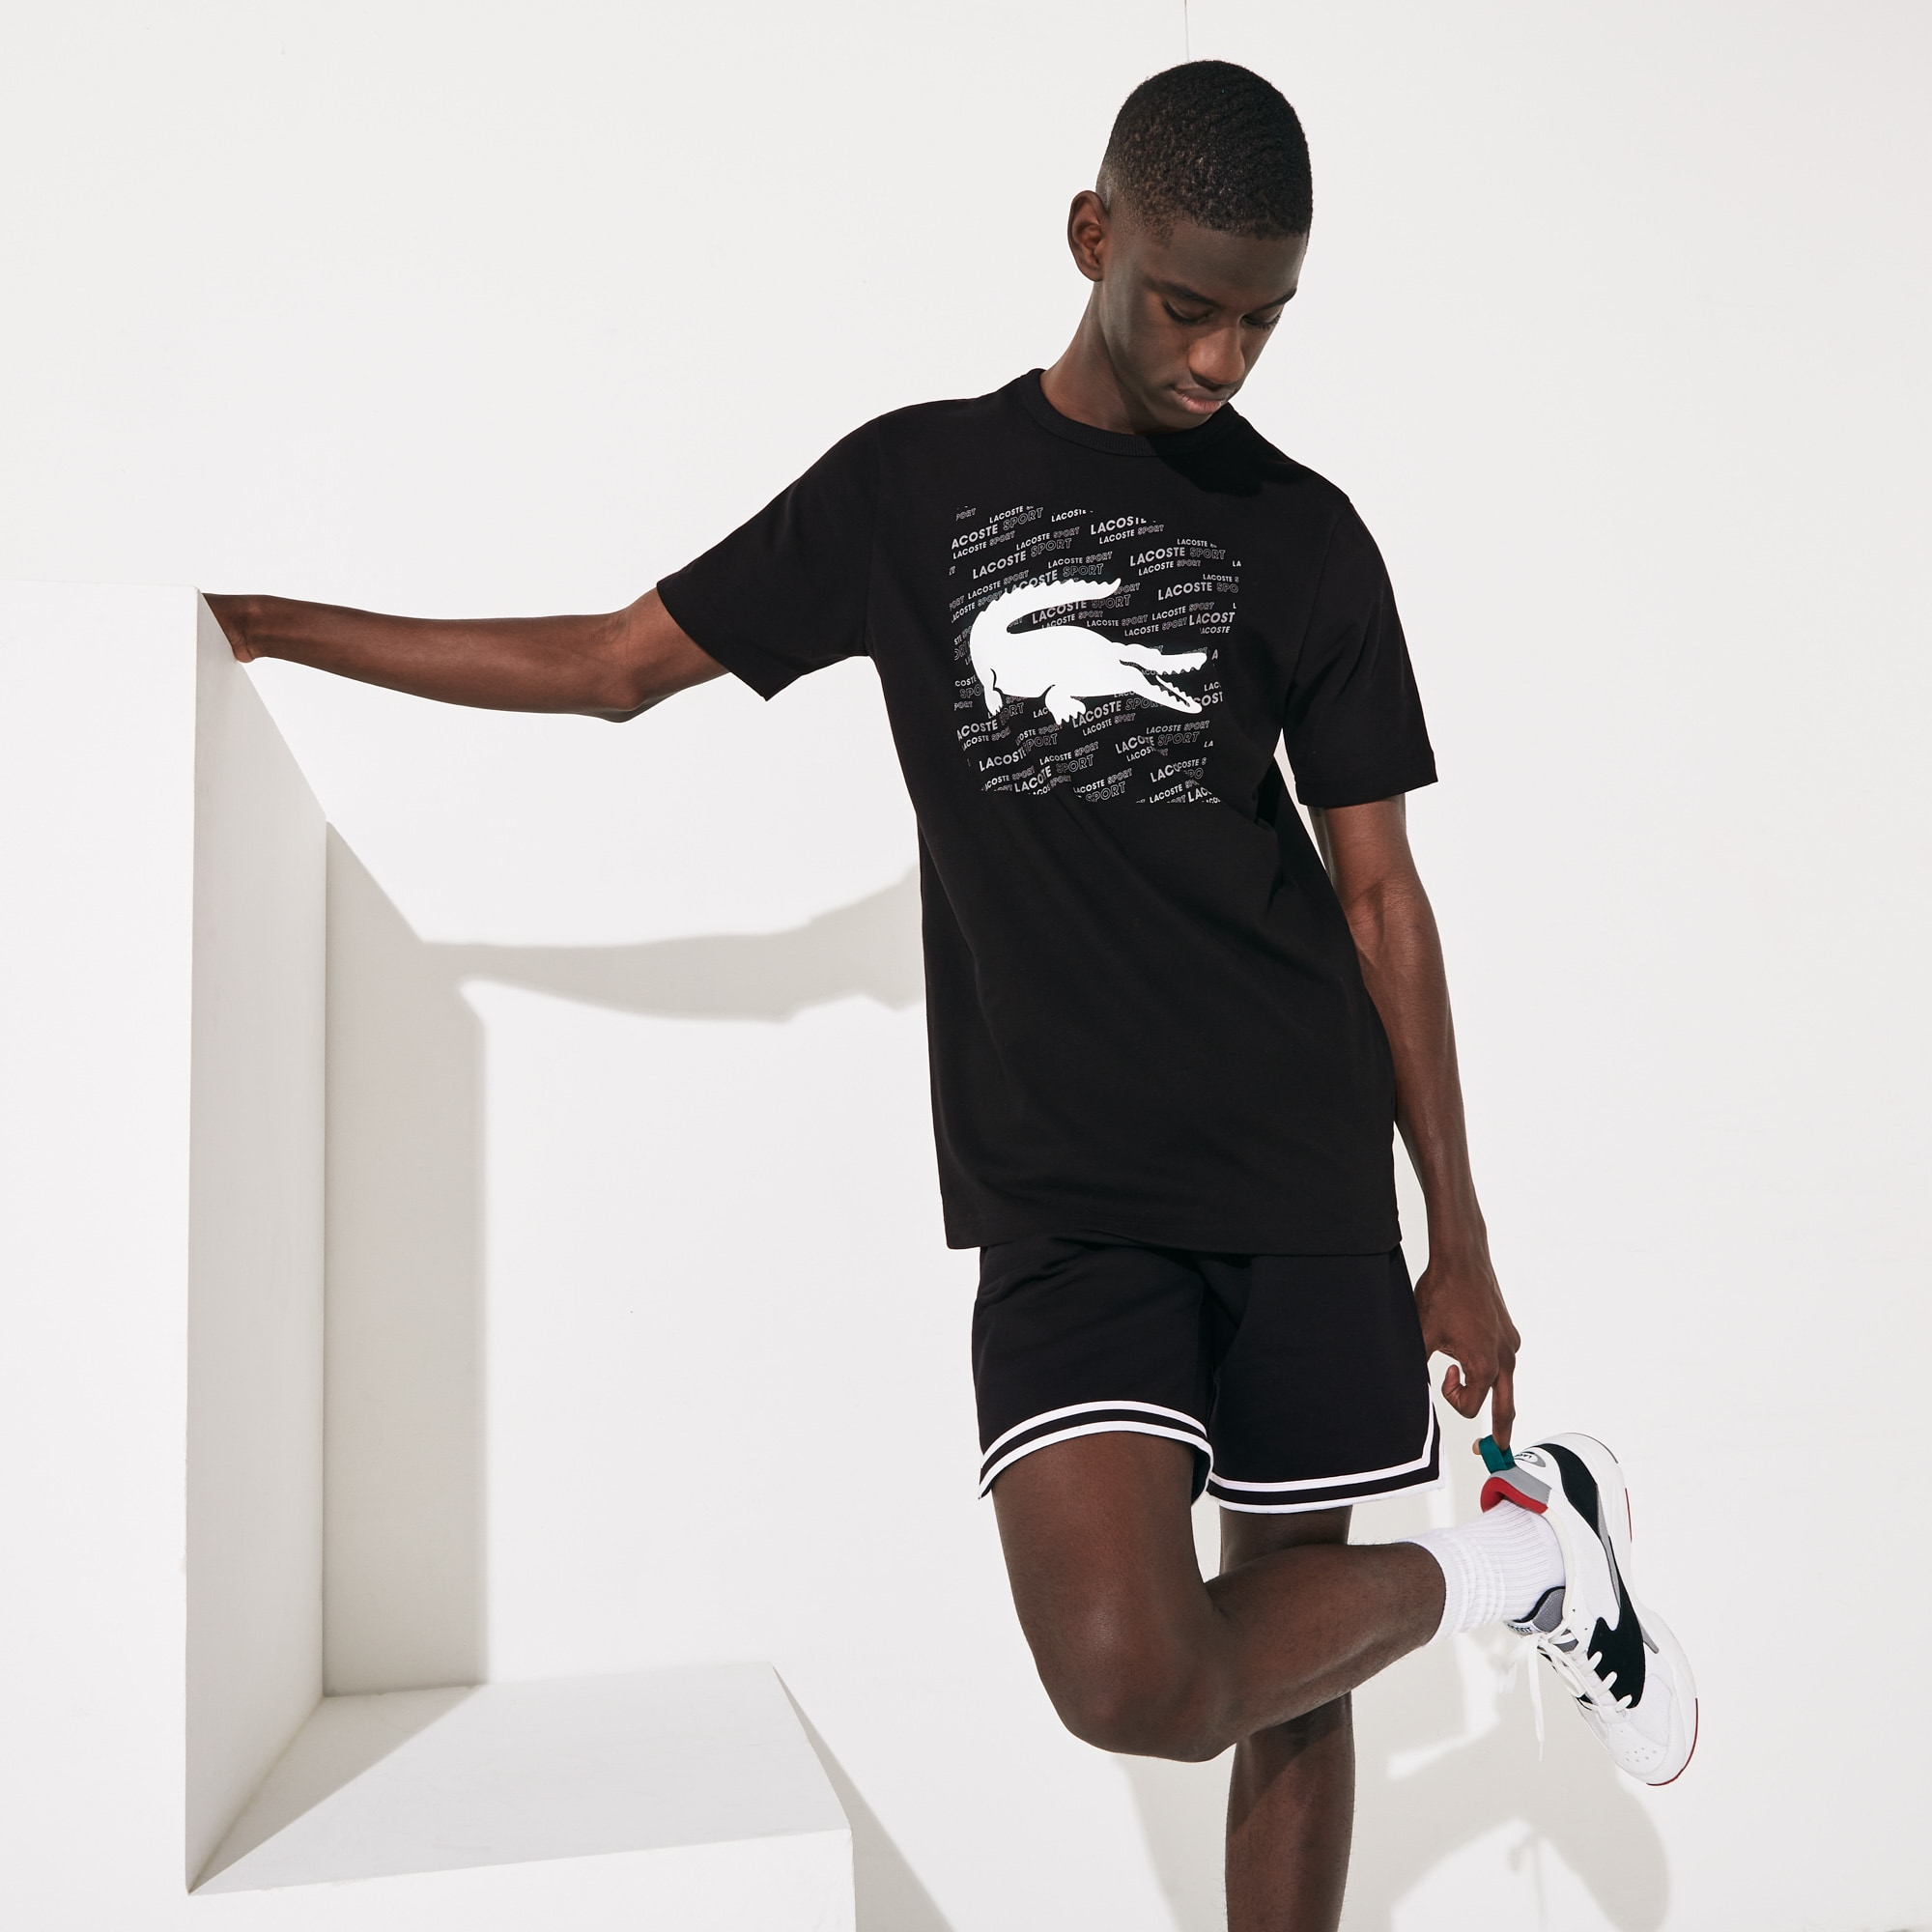 라코스테 스포츠 반팔티 Lacoste Mens SPORT Reflective Logo-Print Cotton T-Shirt,Black / White - 258